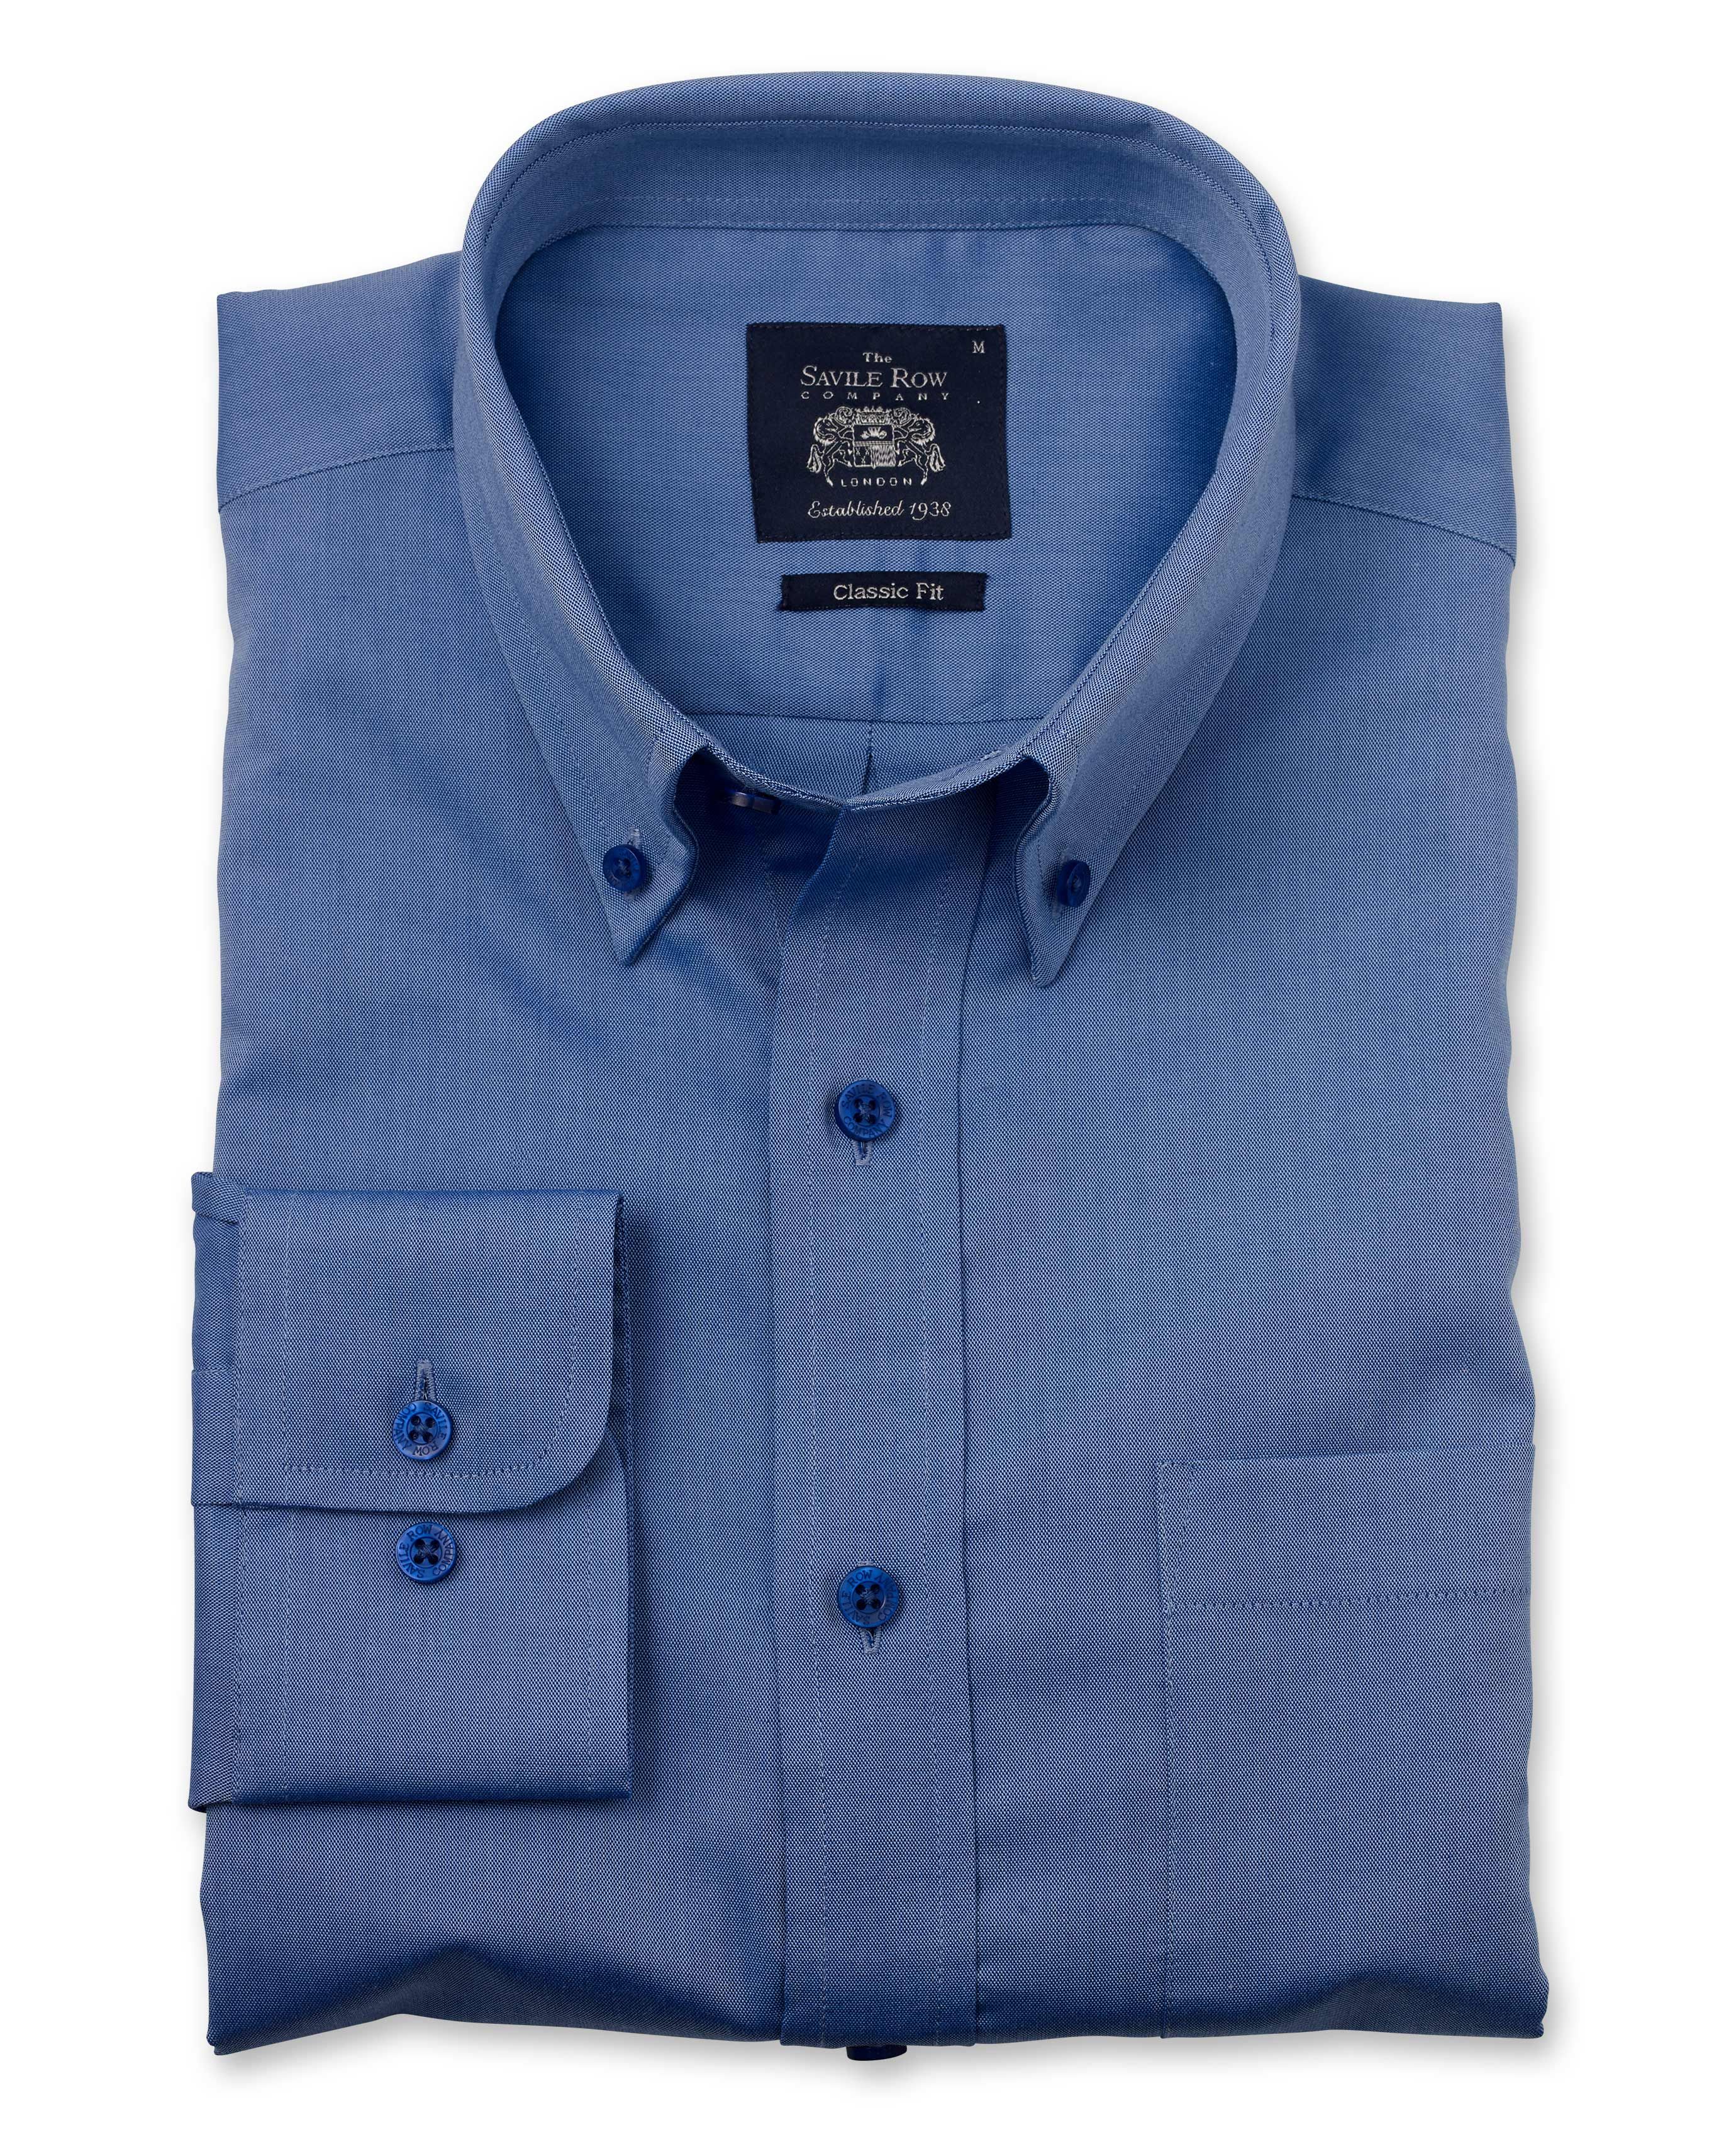 64b3a795d92 Savile Row Men s Mid Blue Pinpoint Classic Fit Button-Down Shirt ...